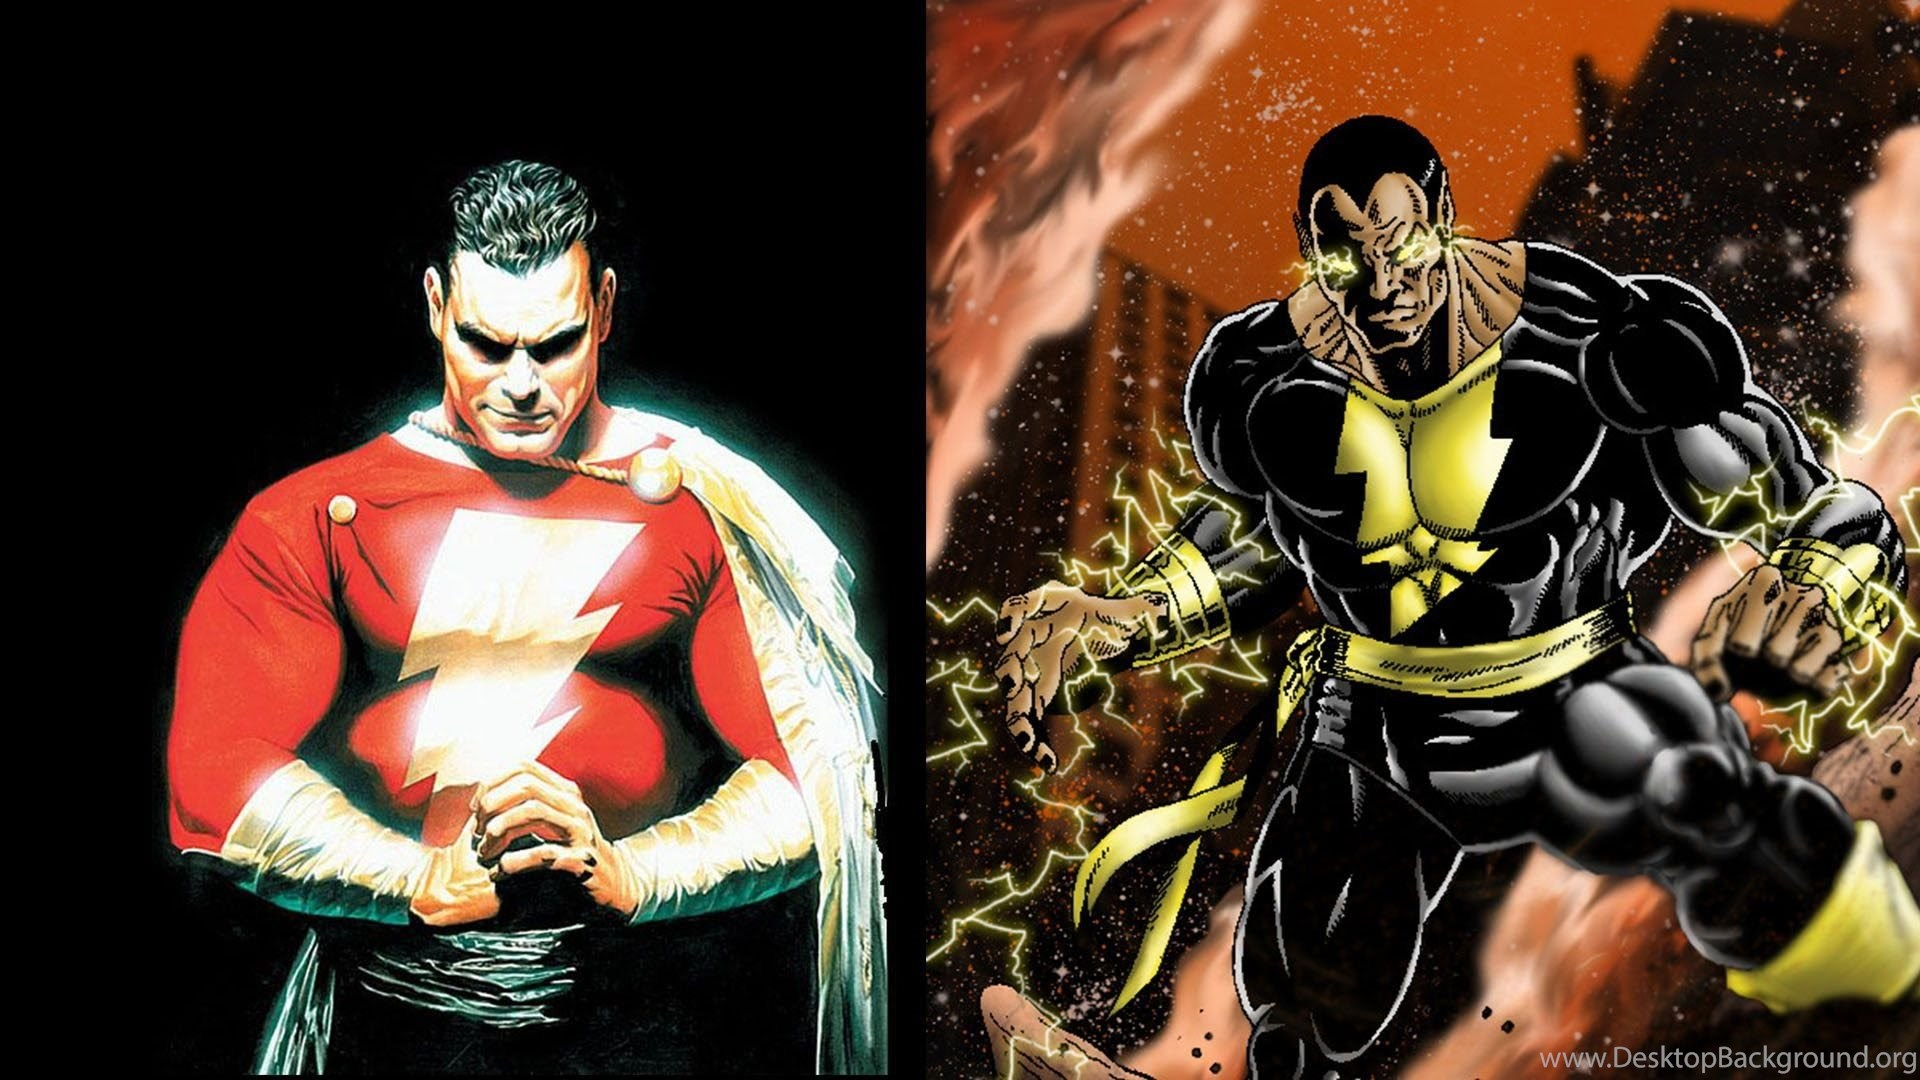 AMC Movie Talk The Rock As Shazam Or Black Adam Ice Bucket